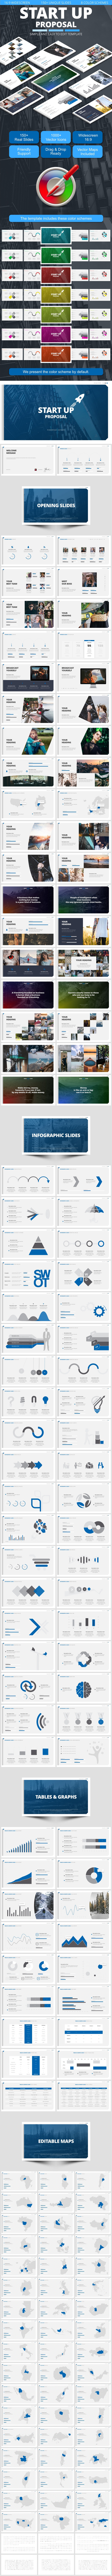 StartUp Proposal - Business PowerPoint Templates